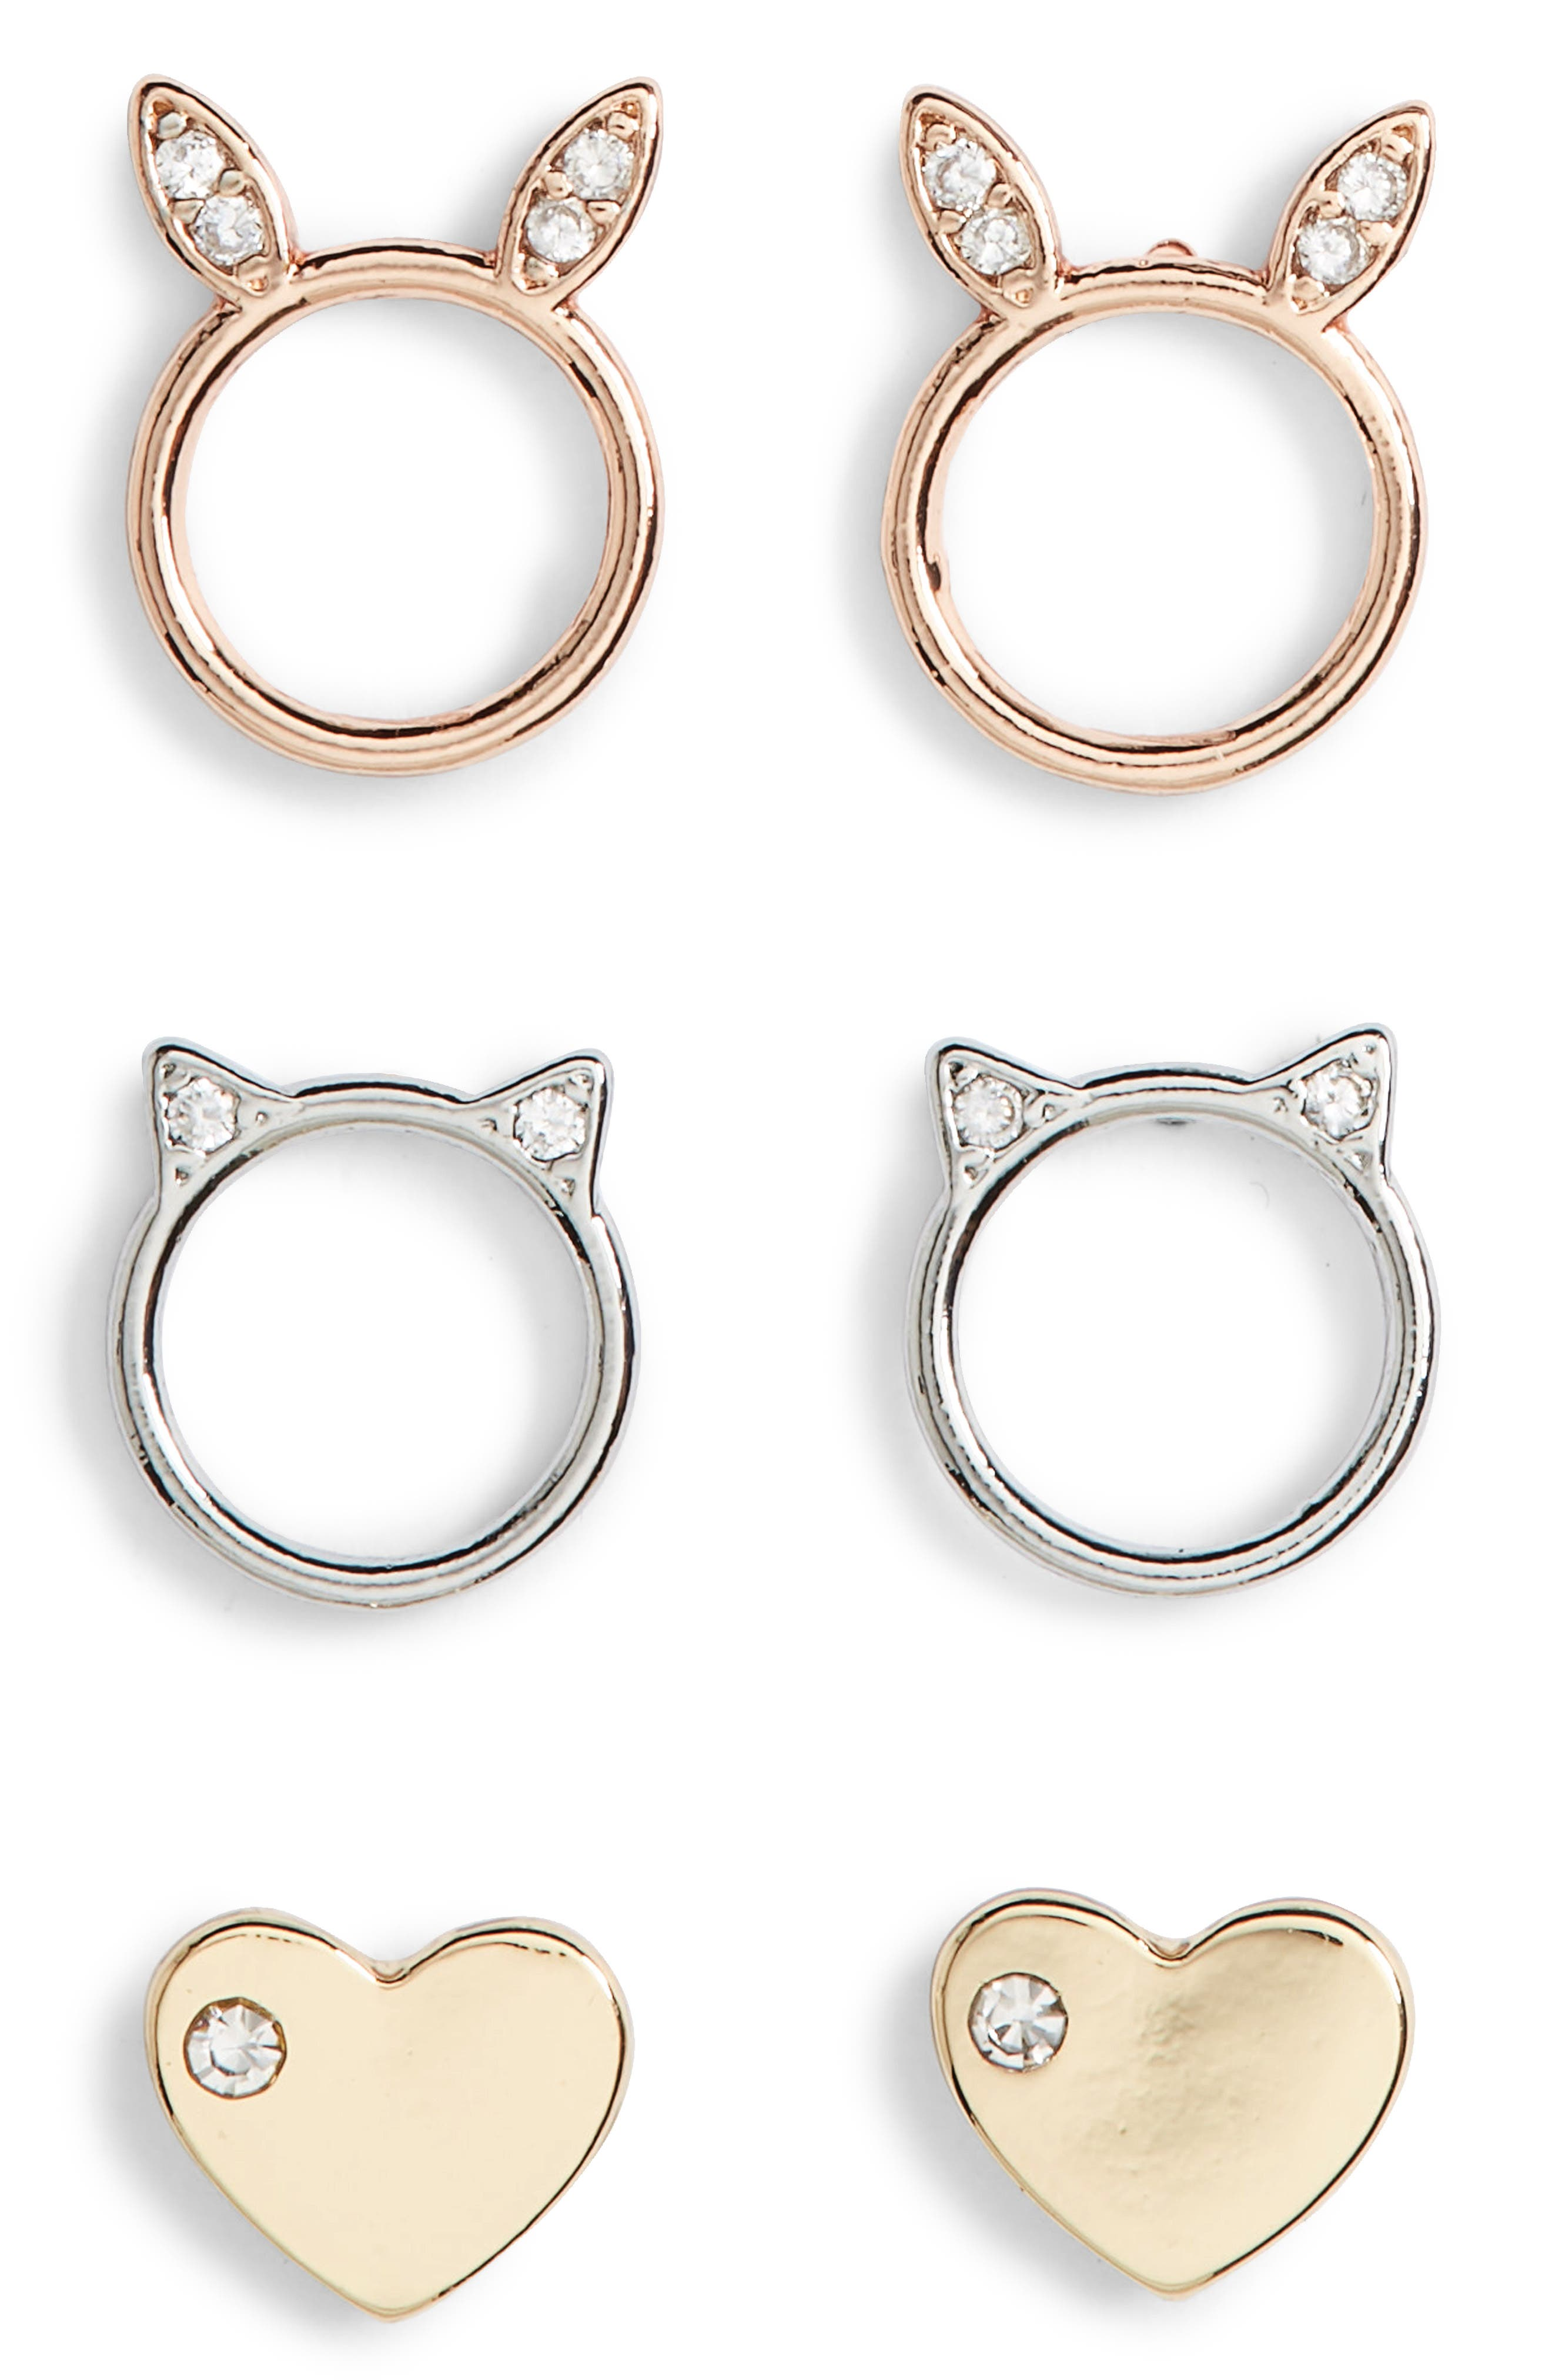 Animal Love Assorted 3-Pack Stud Earrings,                             Main thumbnail 1, color,                             710